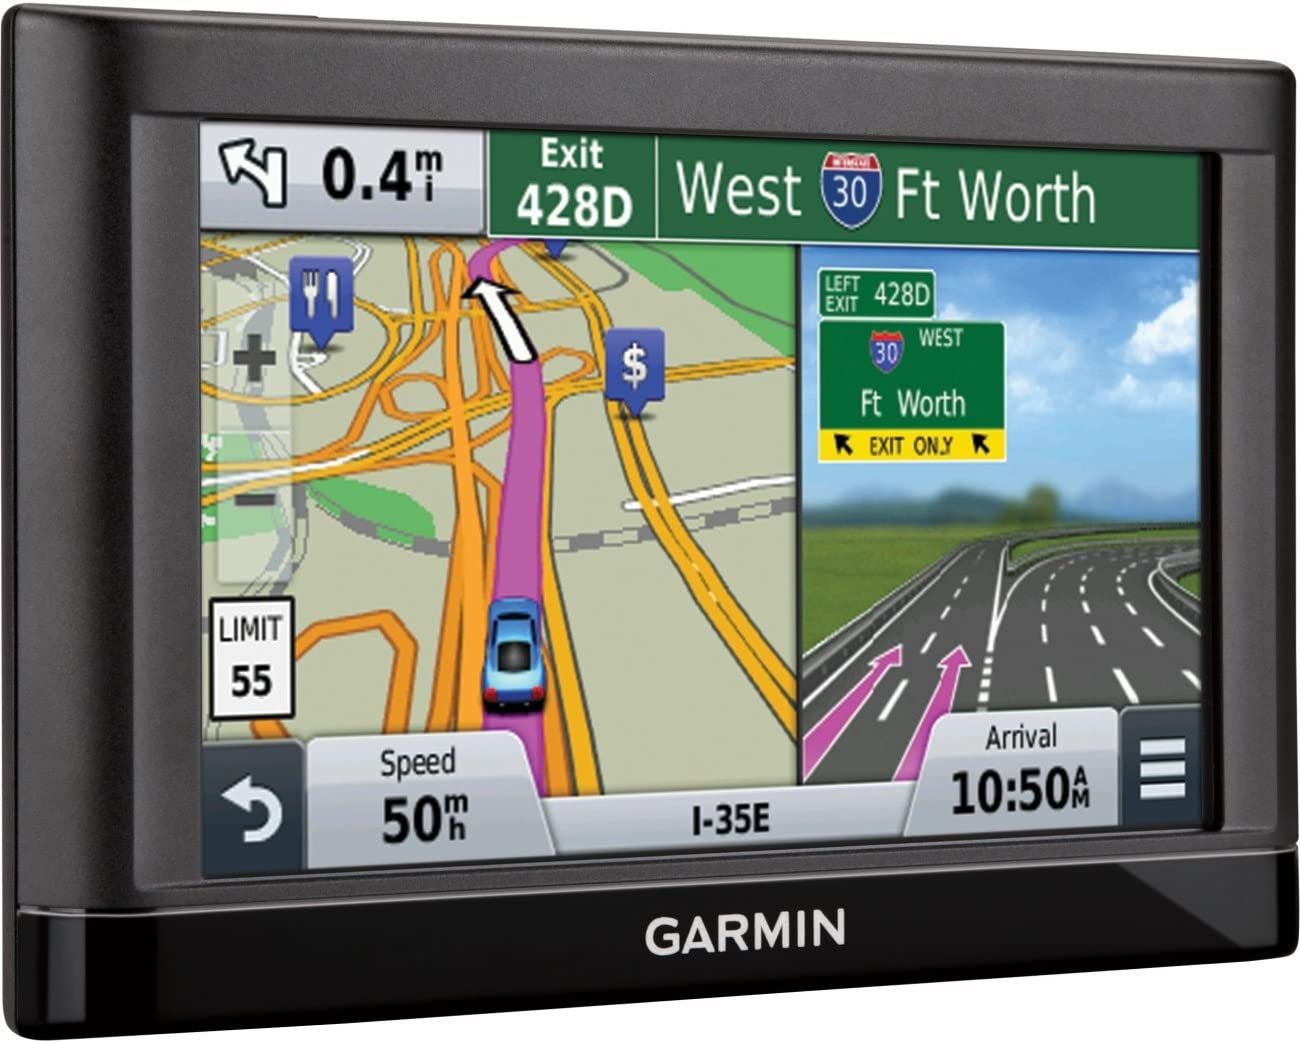 Garmin 5.0 In. GPS Navigator with U.S. Coverage with Lifetime Maps